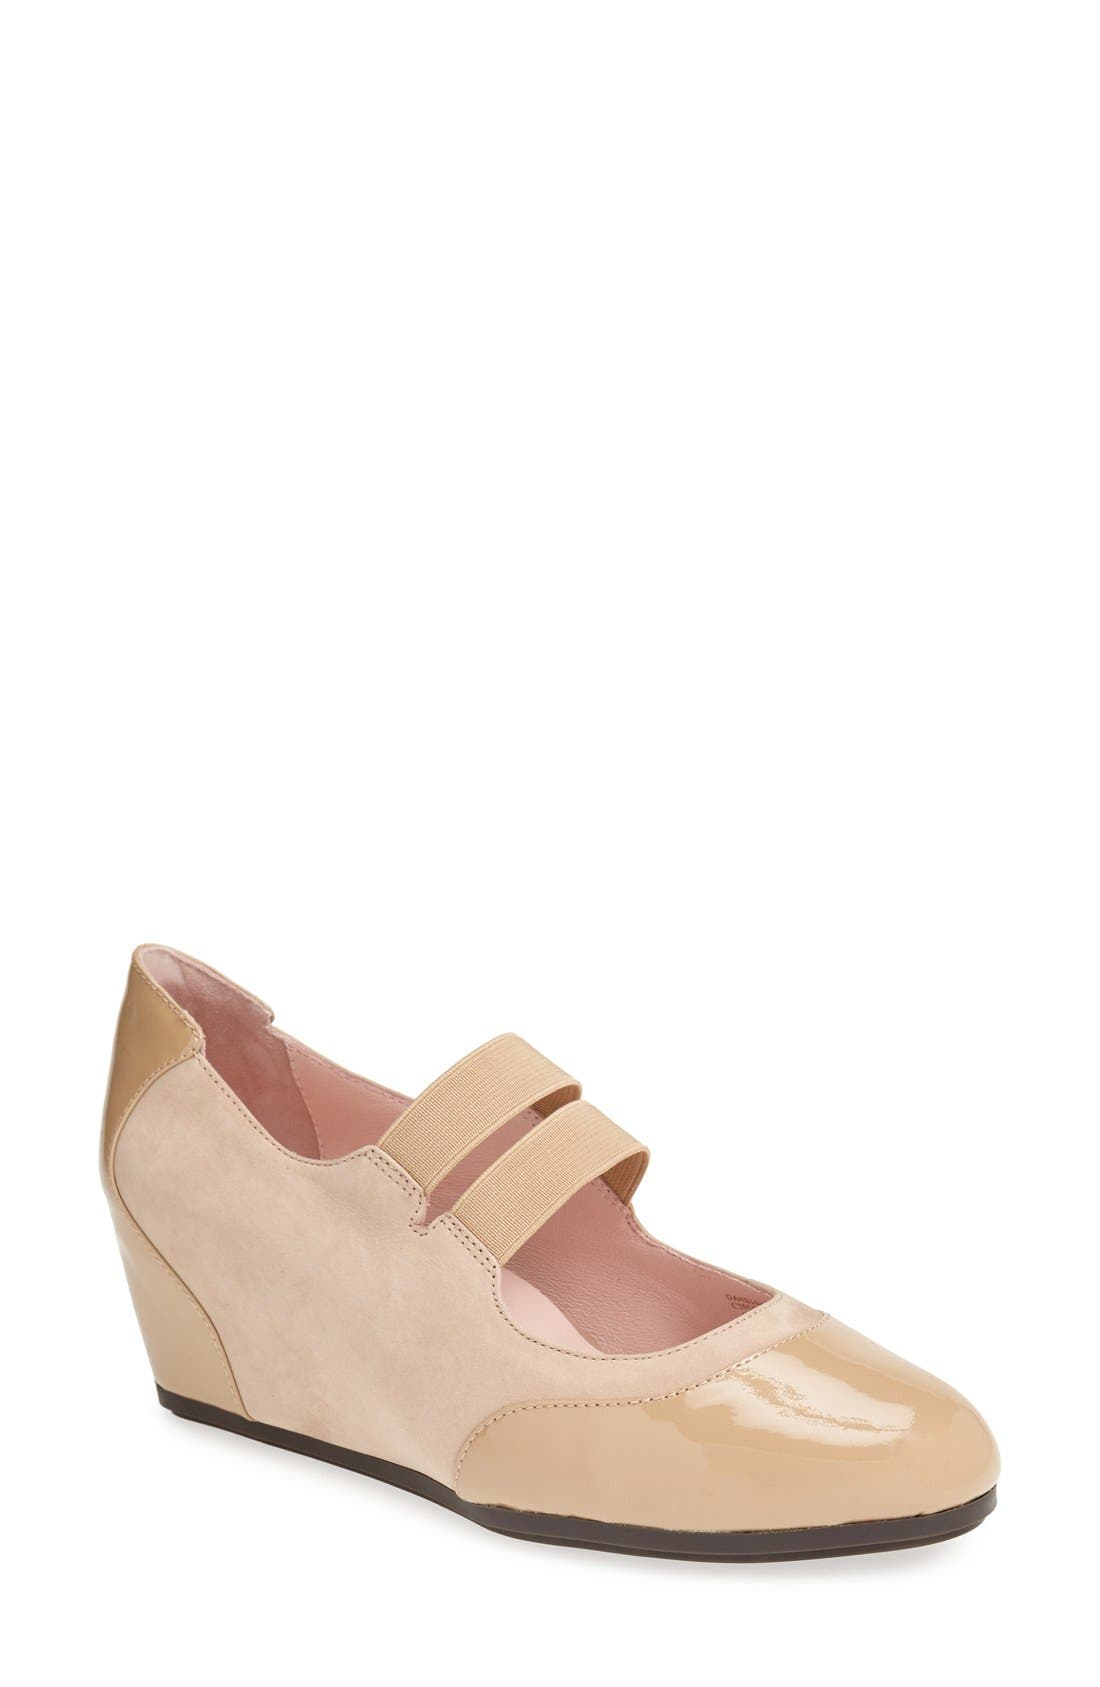 Alternate Image 1 Selected - Taryn Rose 'Danelle' Leather Wedge Pump (Women)